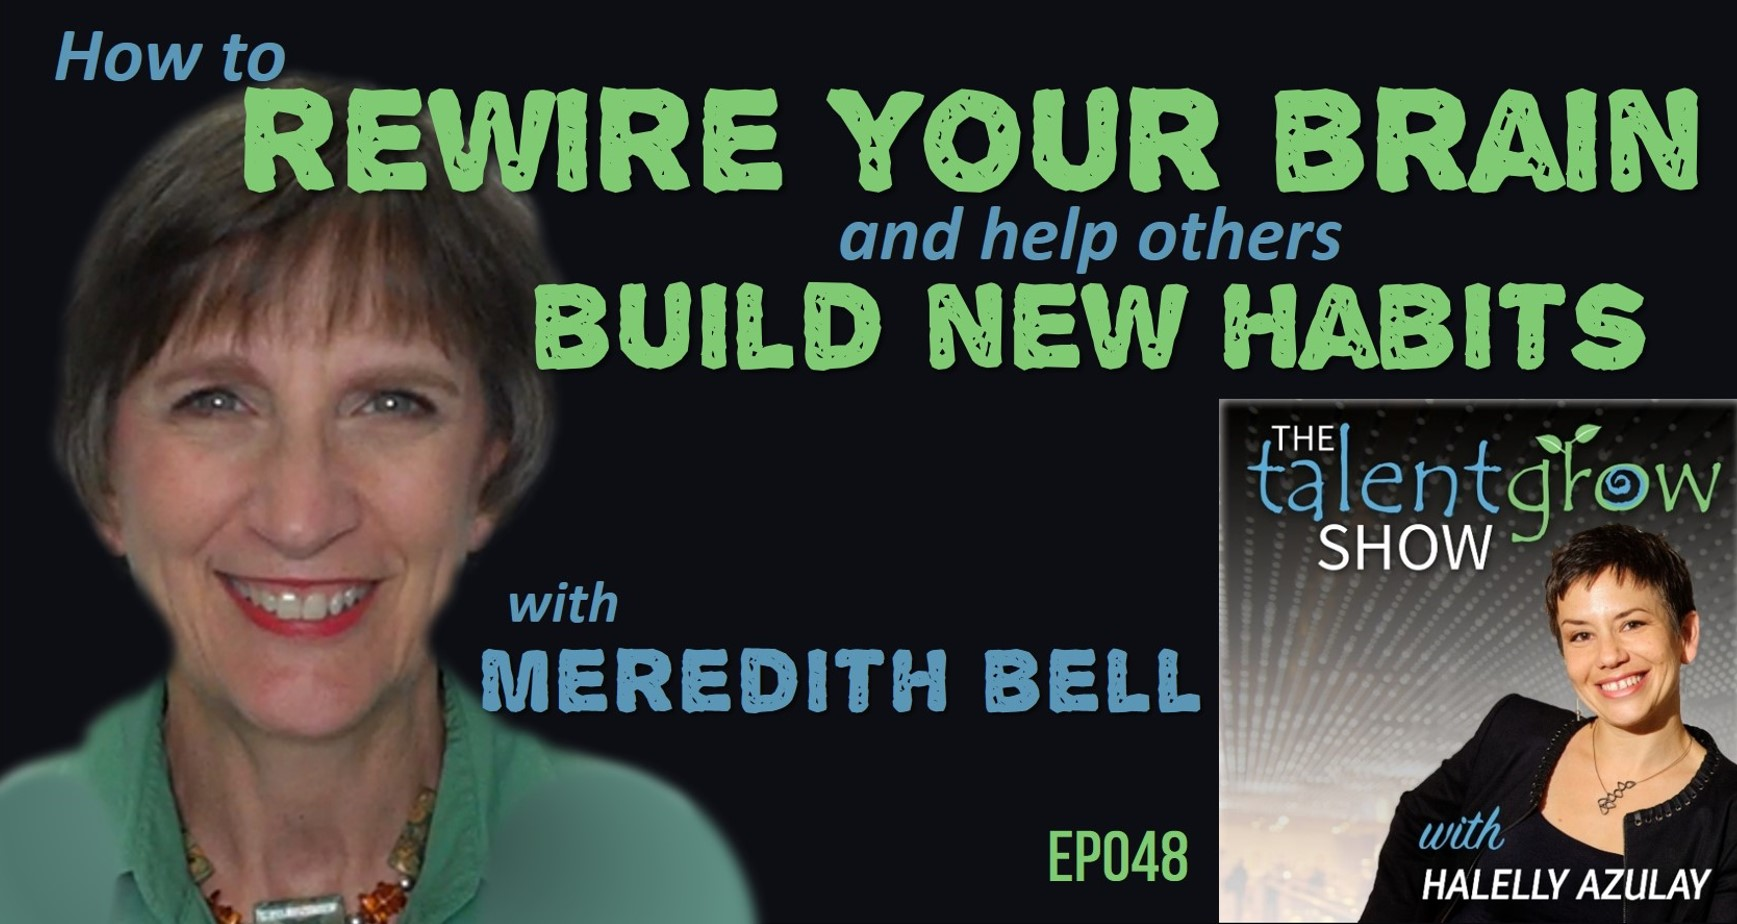 How to rewire your brain and help others build new habits with Meredith Bell on the TalentGrow Show podcast by Halelly Azulay